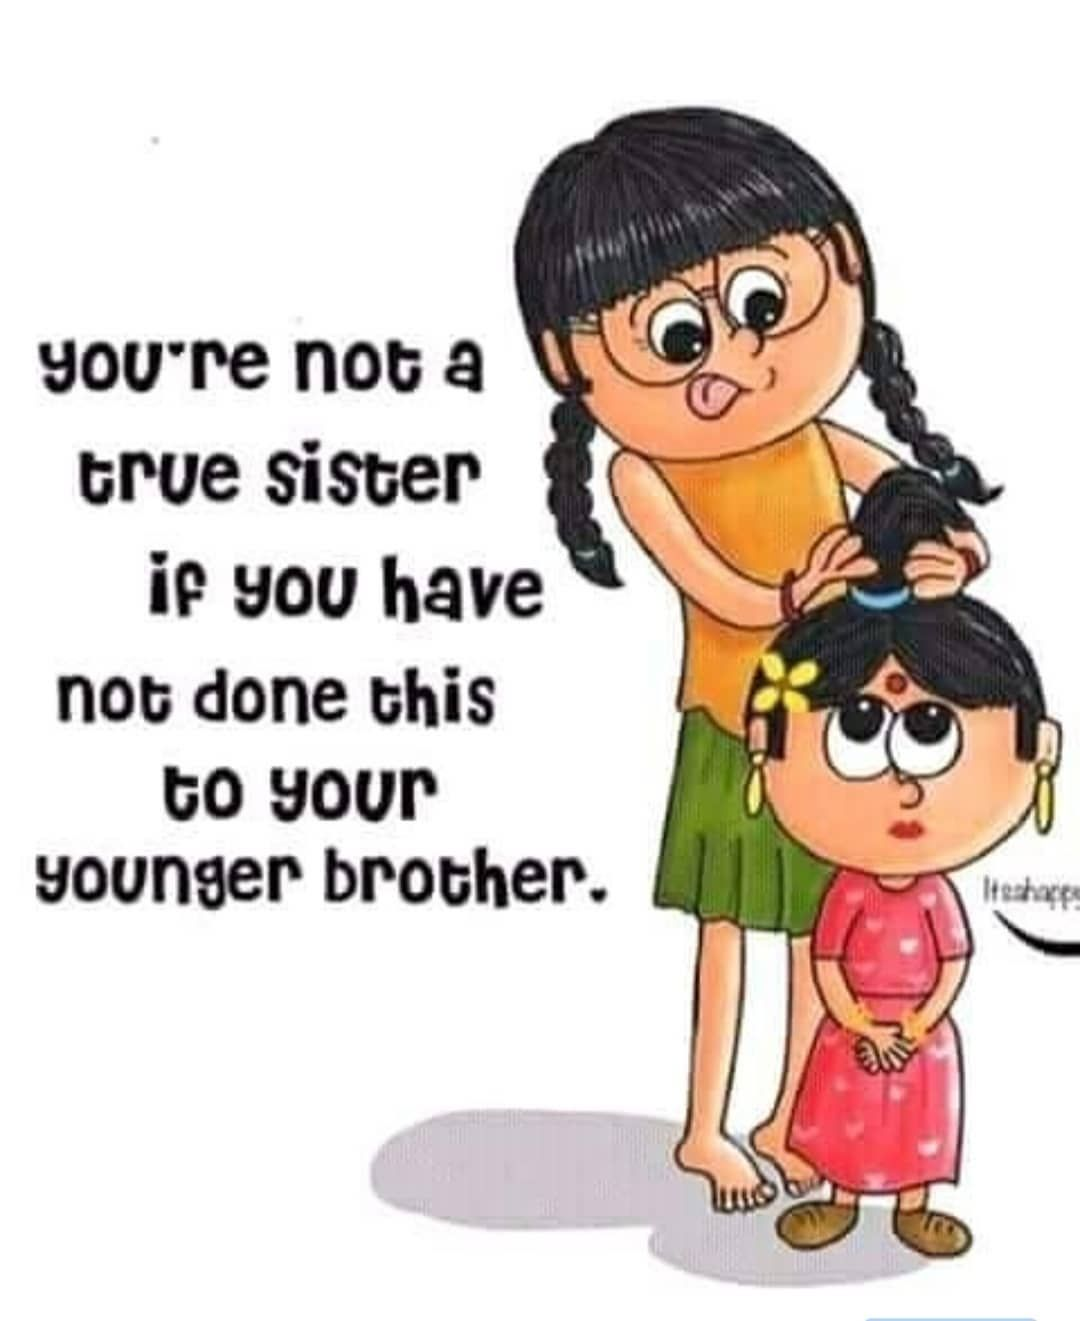 Brother Sister Funny Quotes : brother, sister, funny, quotes, Funny, Quotes, Little, Brother, Manny, Quote